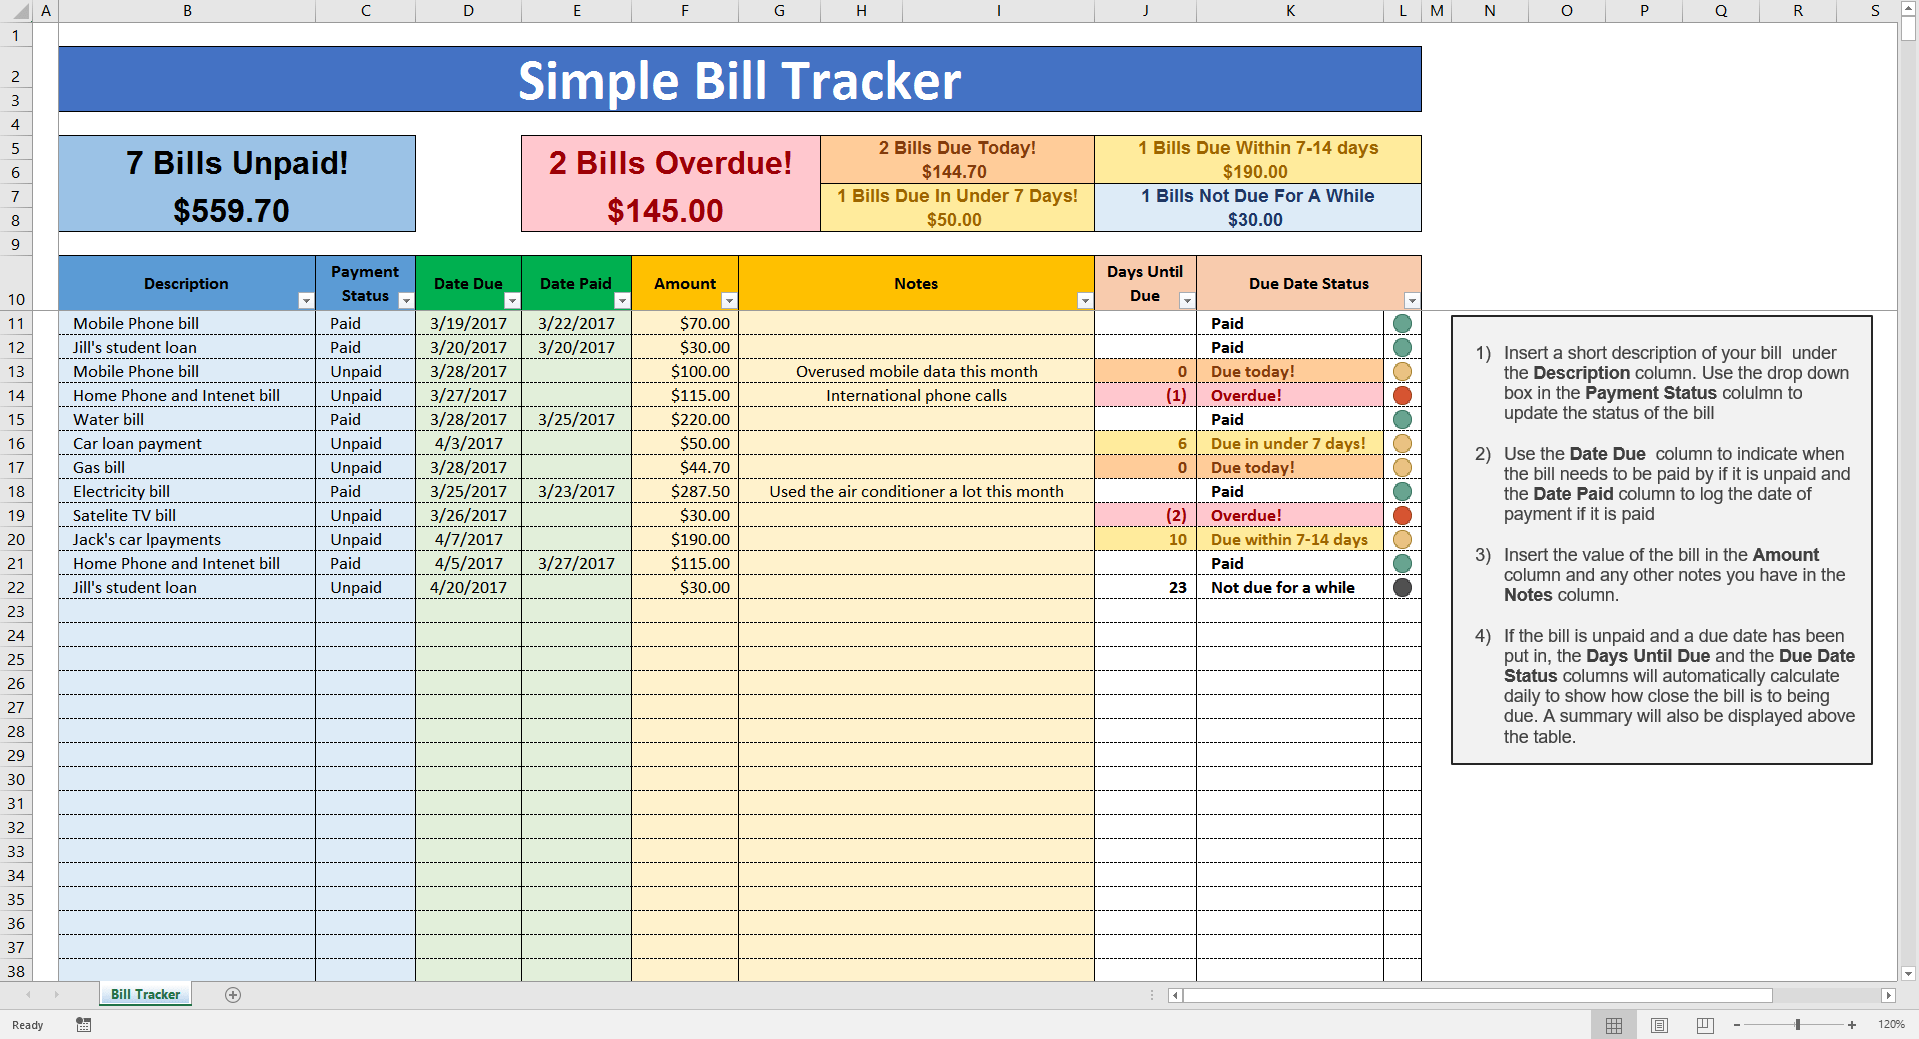 Time Tracking Spreadsheet and Simple Bill Tracker Savvy Spreadsheets